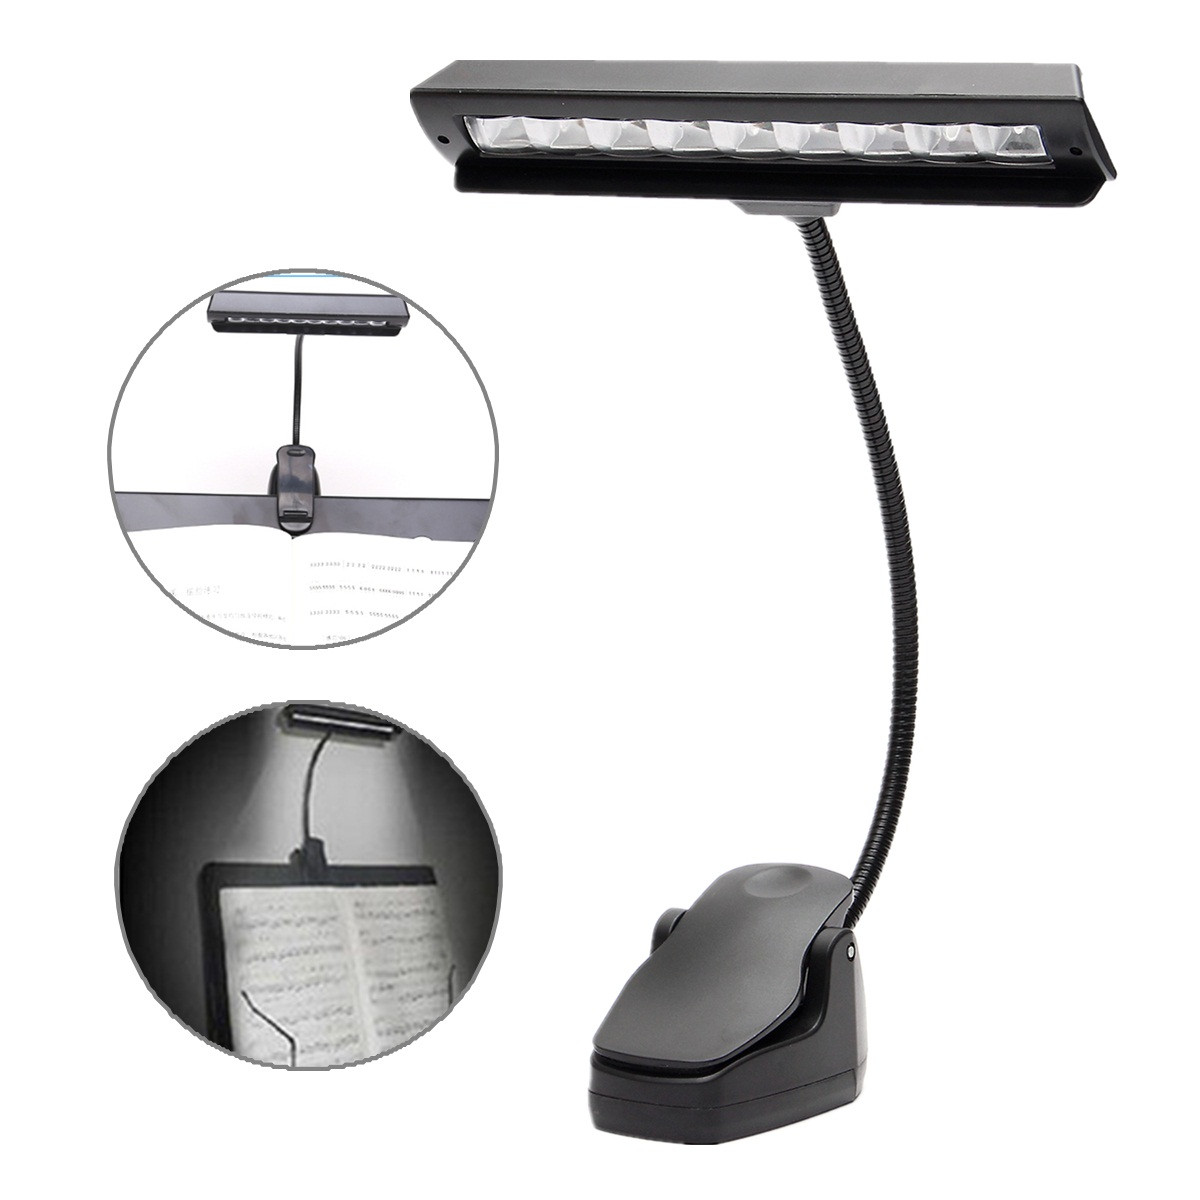 Flexible USB 9 LED Clip On Music Stand Clamp Night Light Student Table Lamp Desk Reading Bedside Light Bedroom Home Lighting